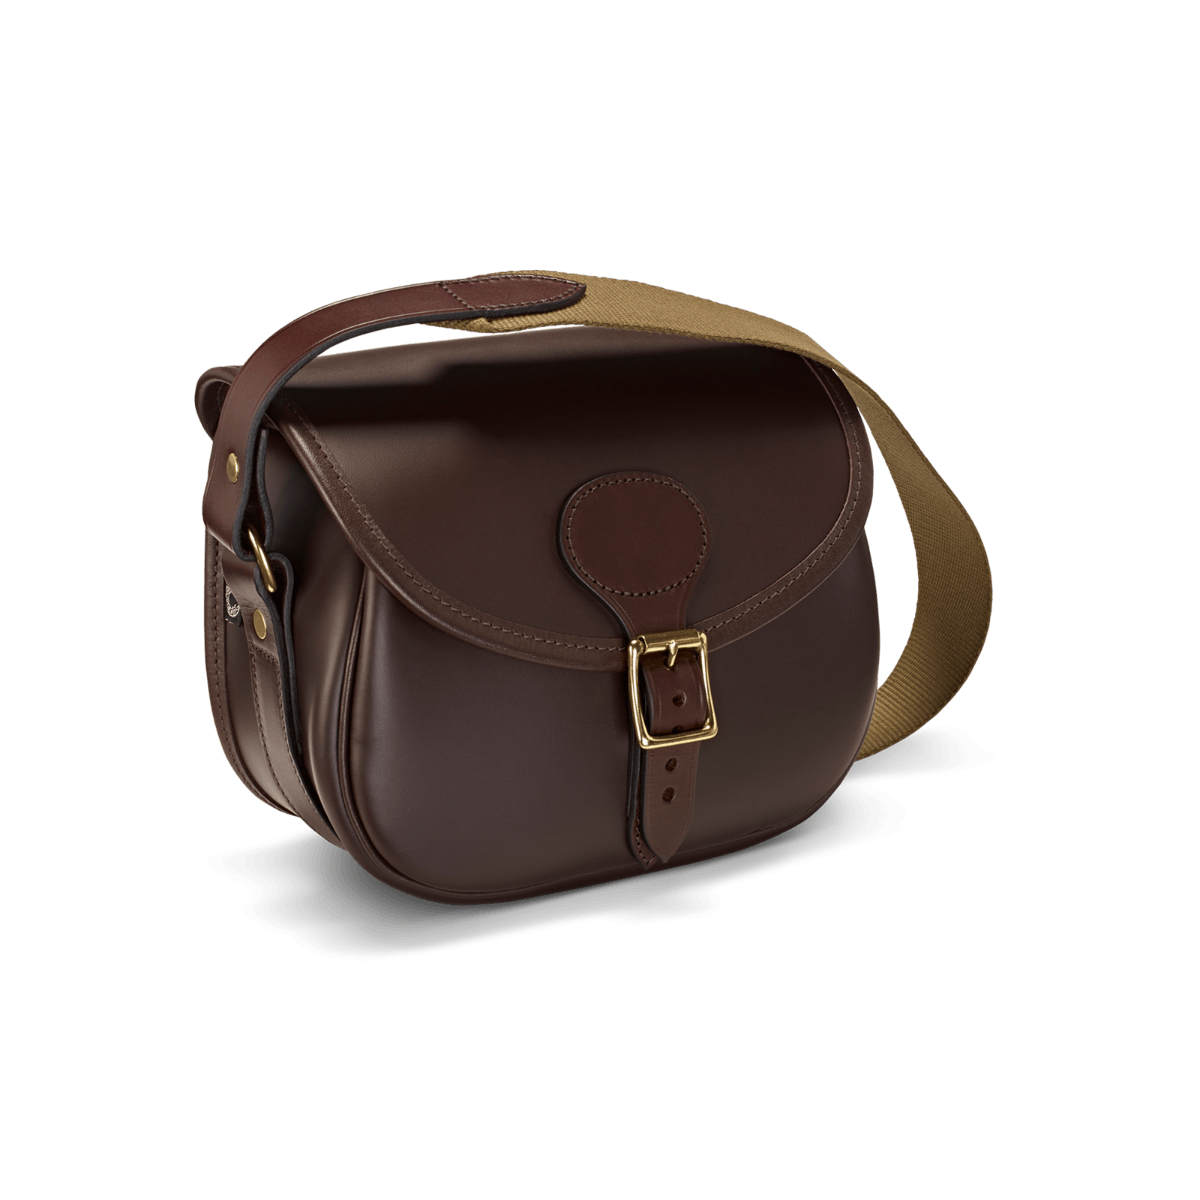 CROOTS Byland Cartridge Bag, læder, oxblood